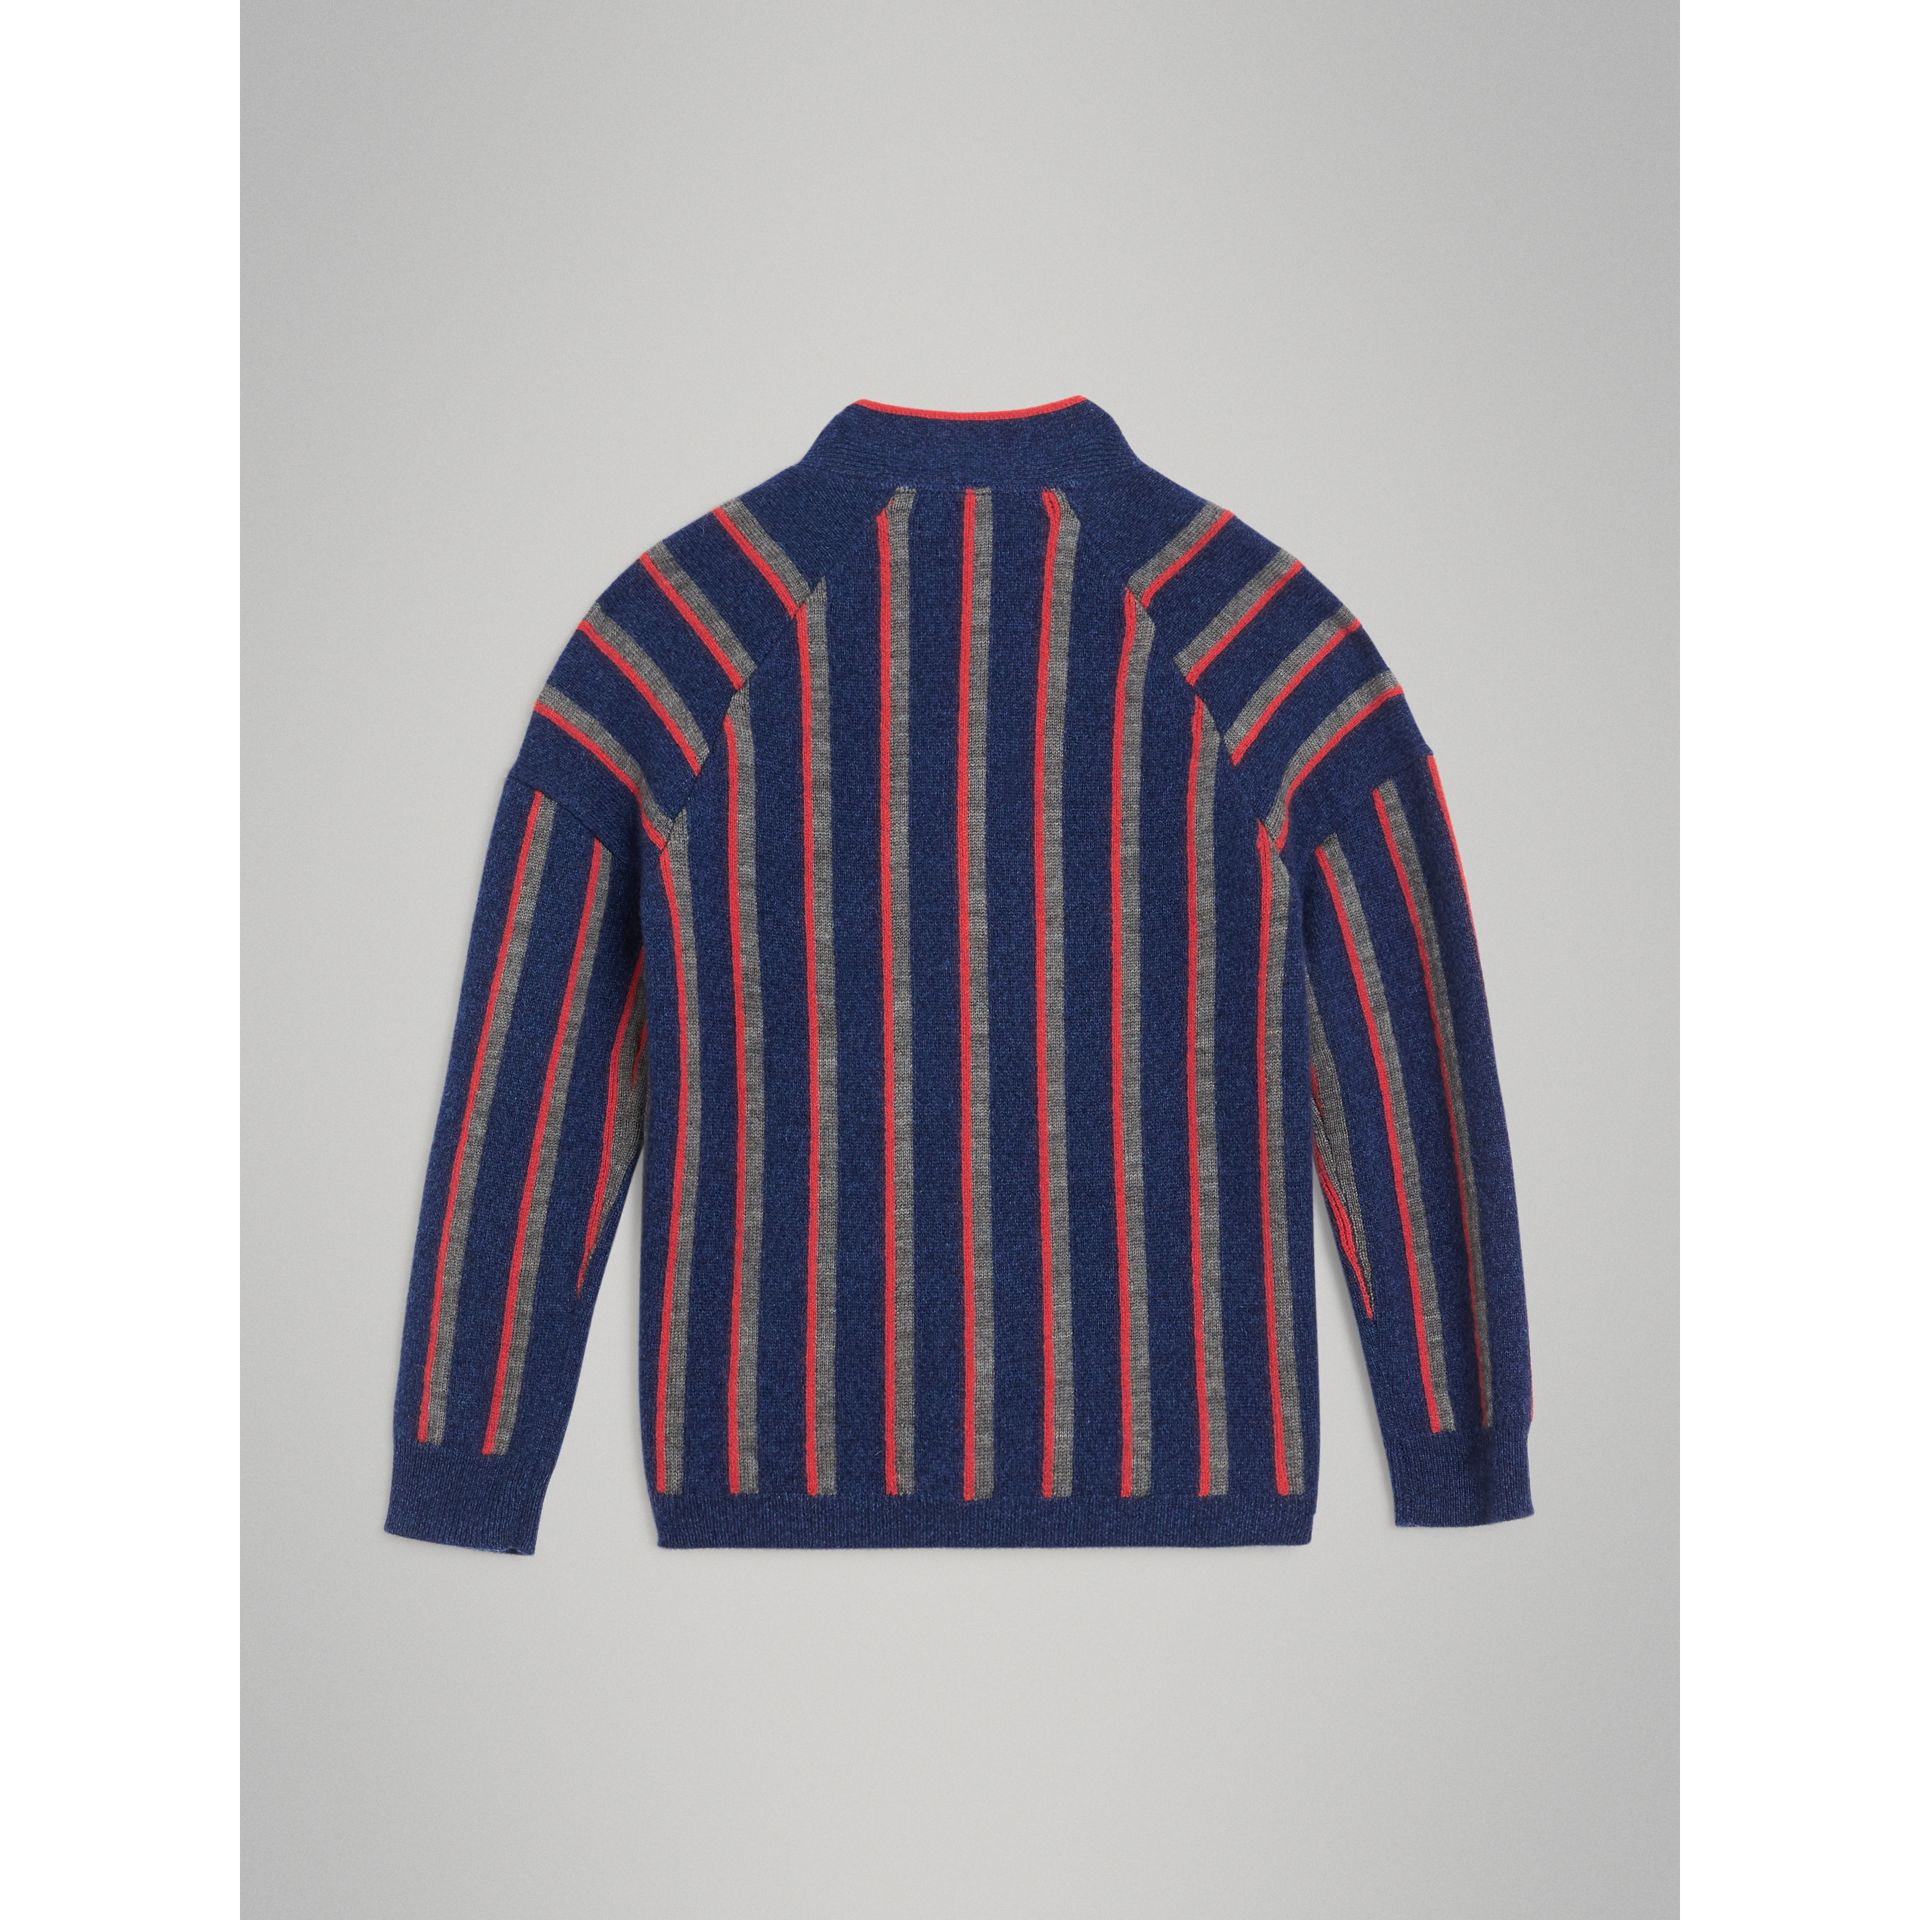 Striped Cashmere Wool Cardigan in Dark Canvas Blue | Burberry United Kingdom - gallery image 3